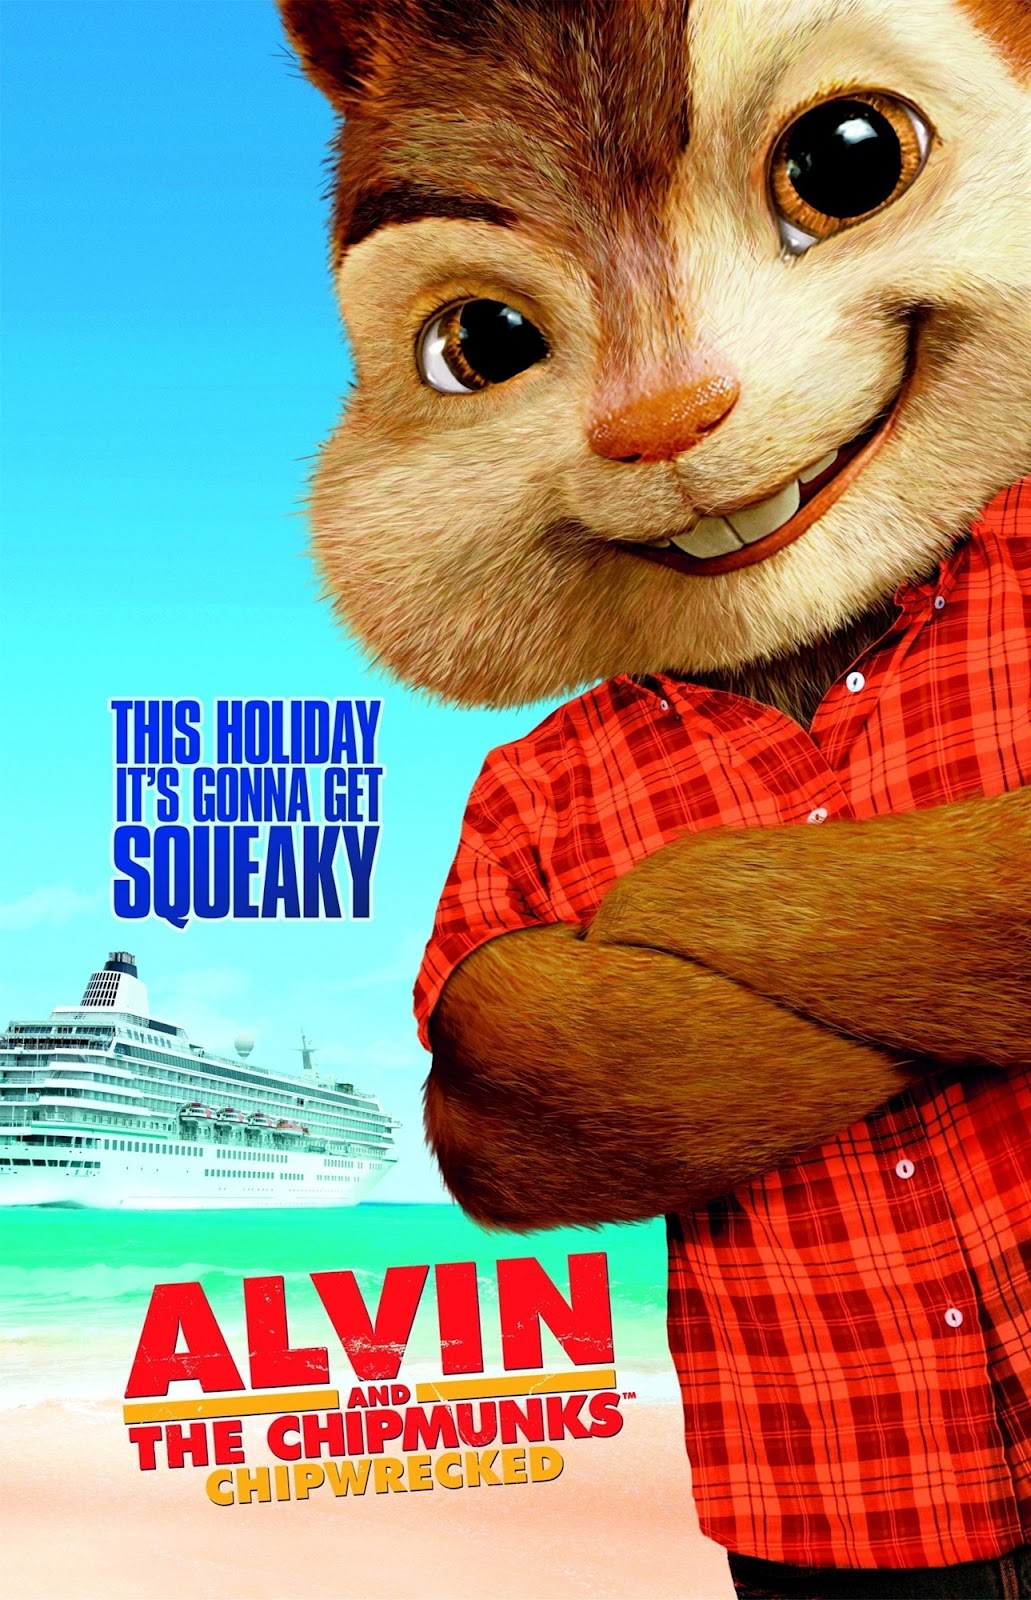 Playing around while aboard a cruise ship, the chipmunks and chipettes accidentally go overboard and end up marooned